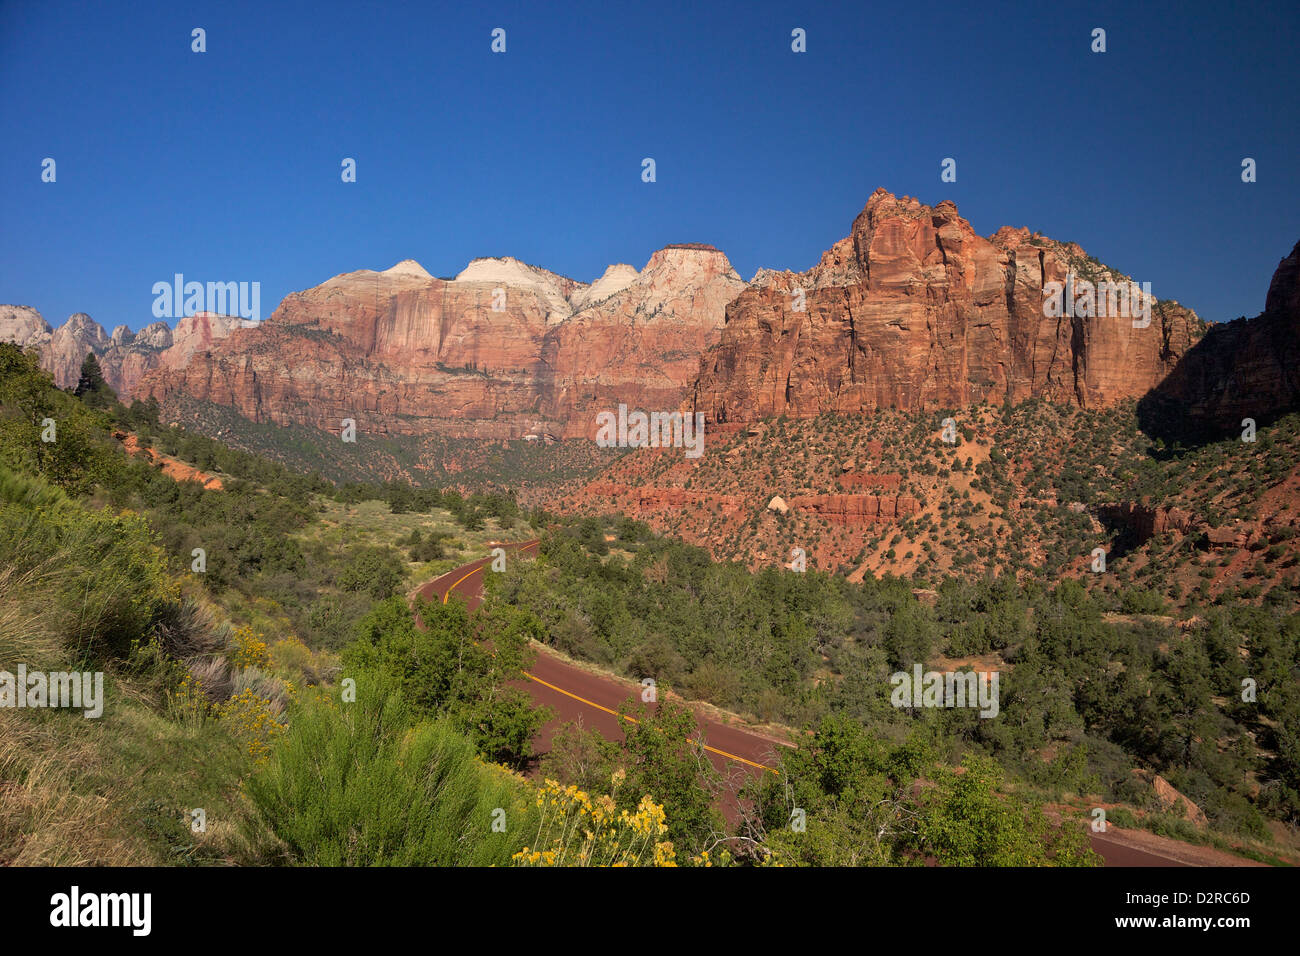 Zion-Mount Carmel Highway, Zion National Park, Utah, United States of America, North America - Stock Image